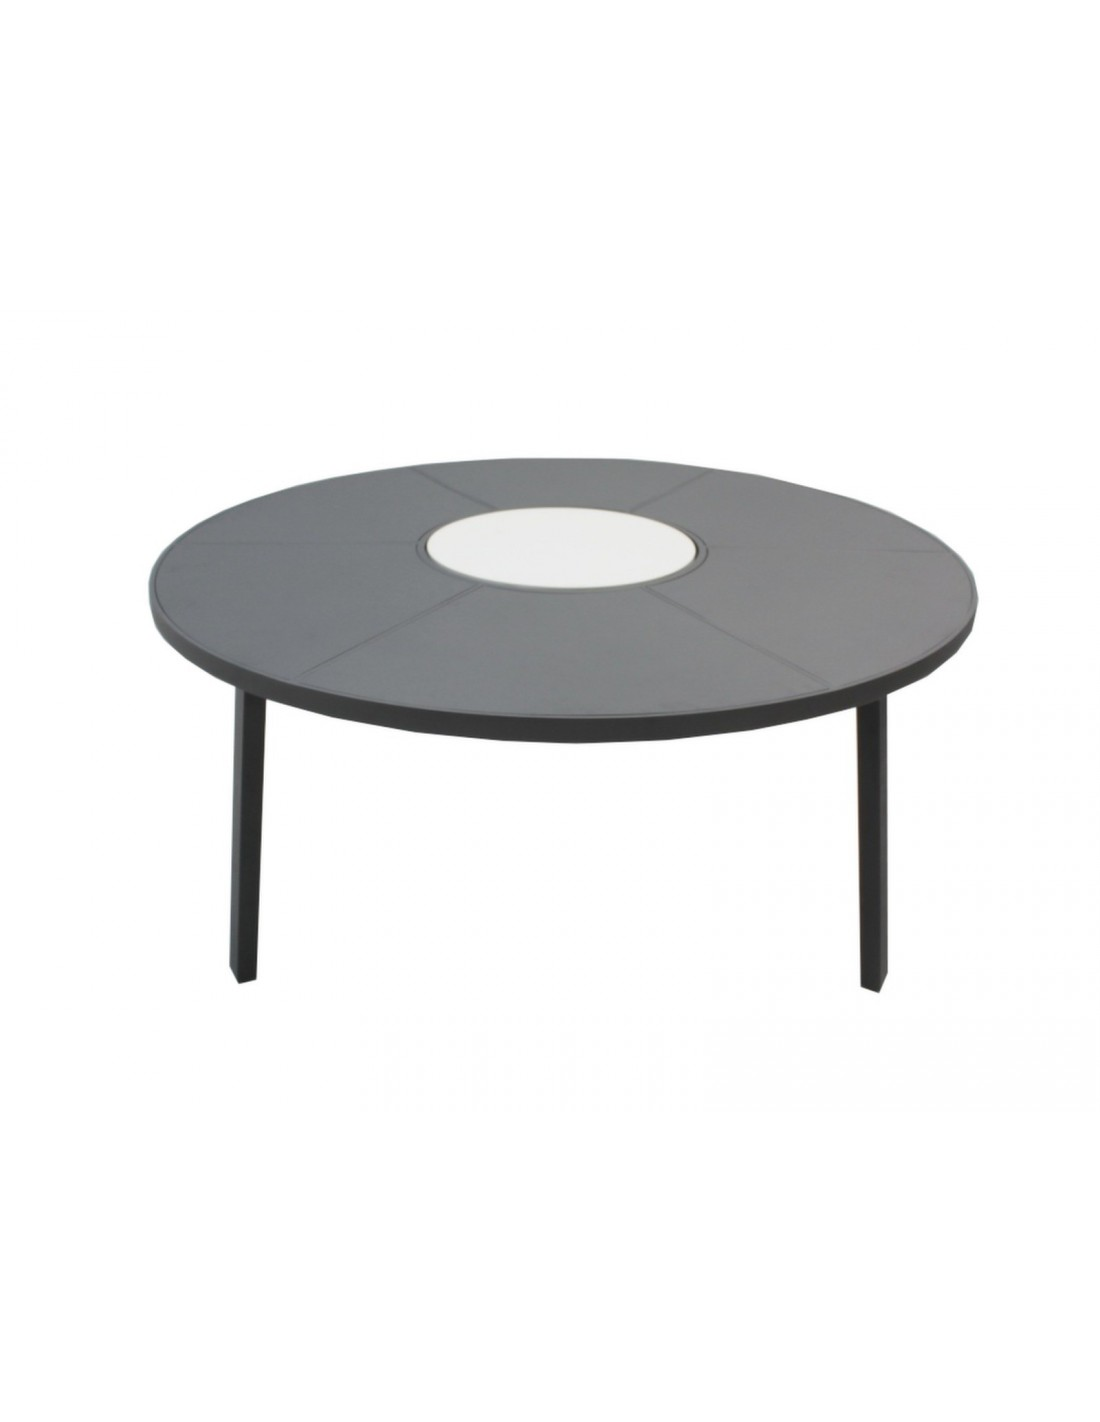 table de jardin azur ronde grey ou taupe 150 cm plateau tournant oc o. Black Bedroom Furniture Sets. Home Design Ideas